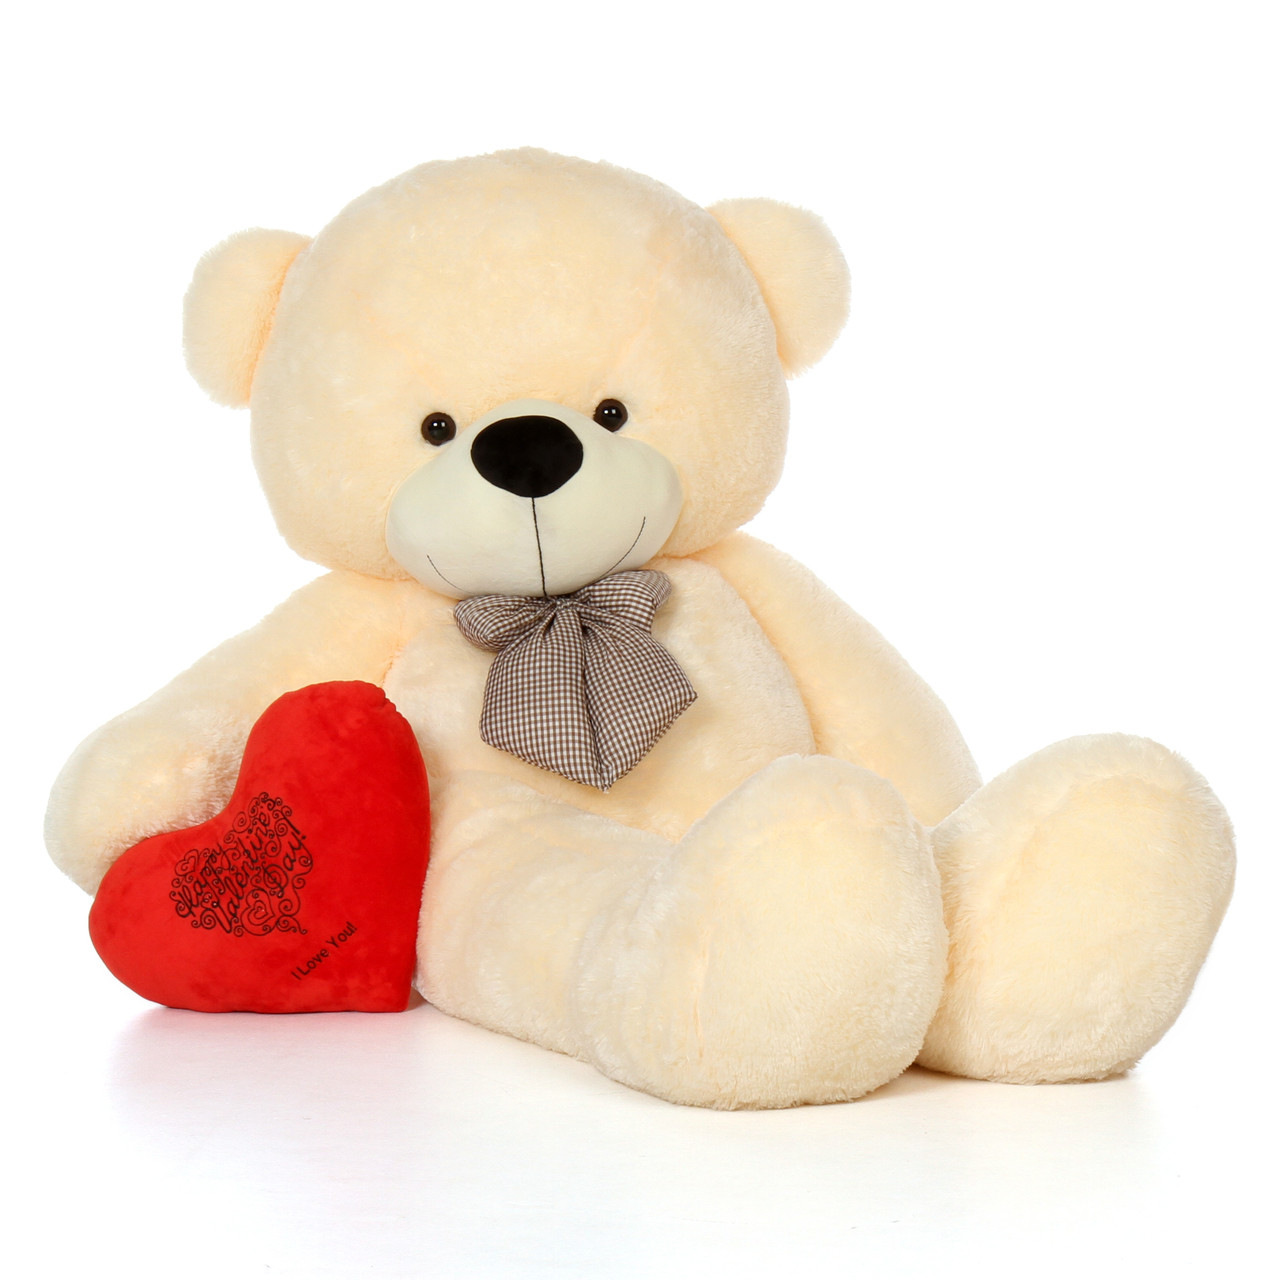 72in Life Size Teddy Bear With Happy Valentine's Day I